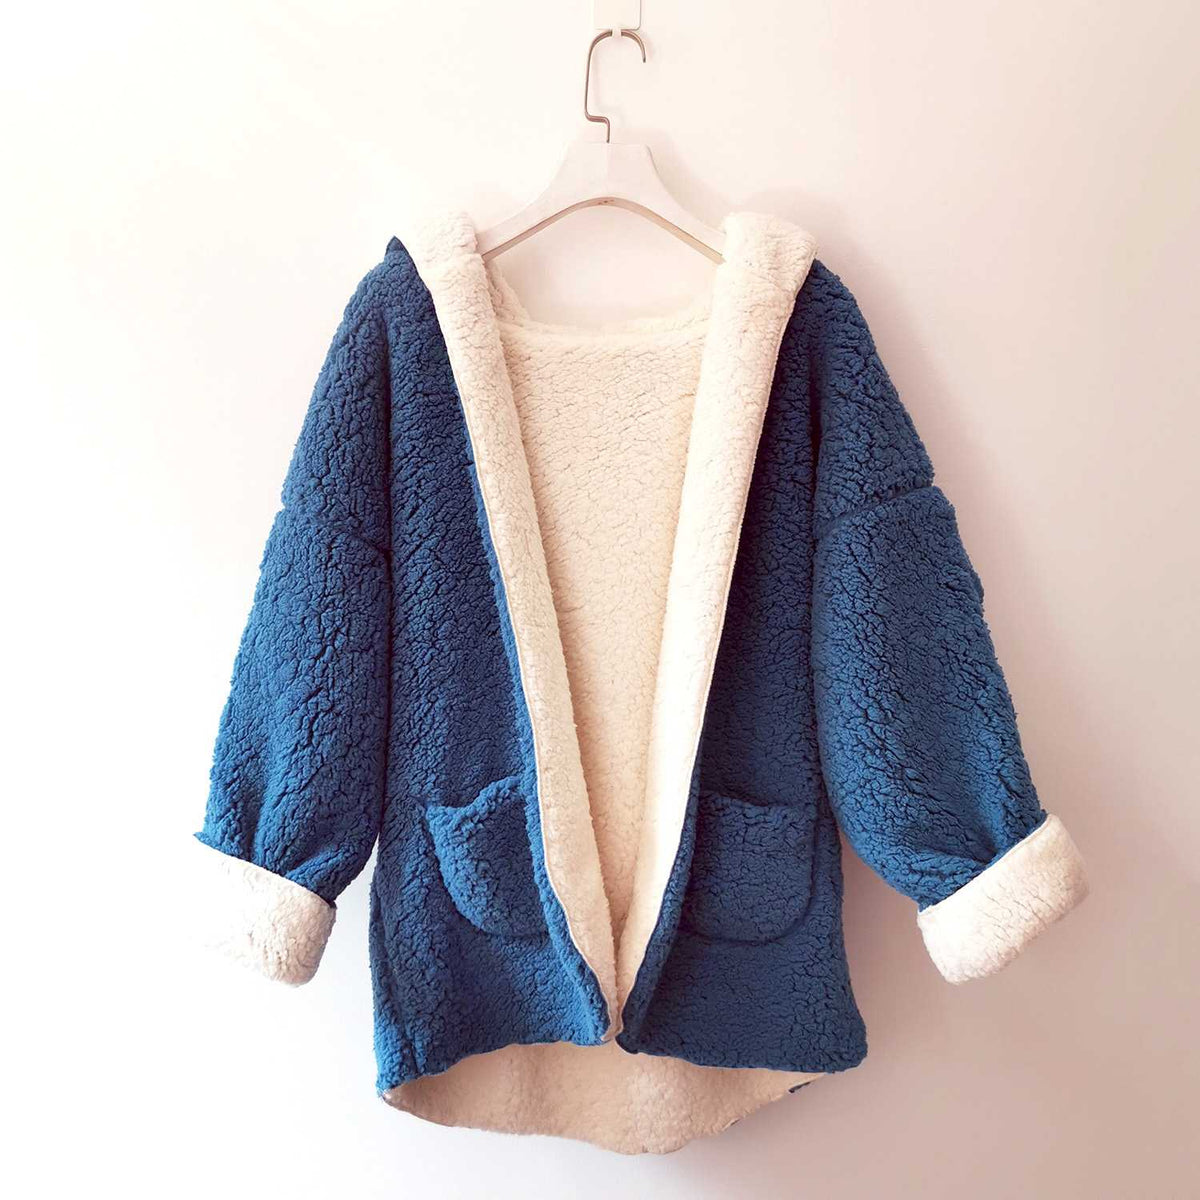 Reversible Oversized Soft Fuzzy Hoodie Coat - worthtryit.com